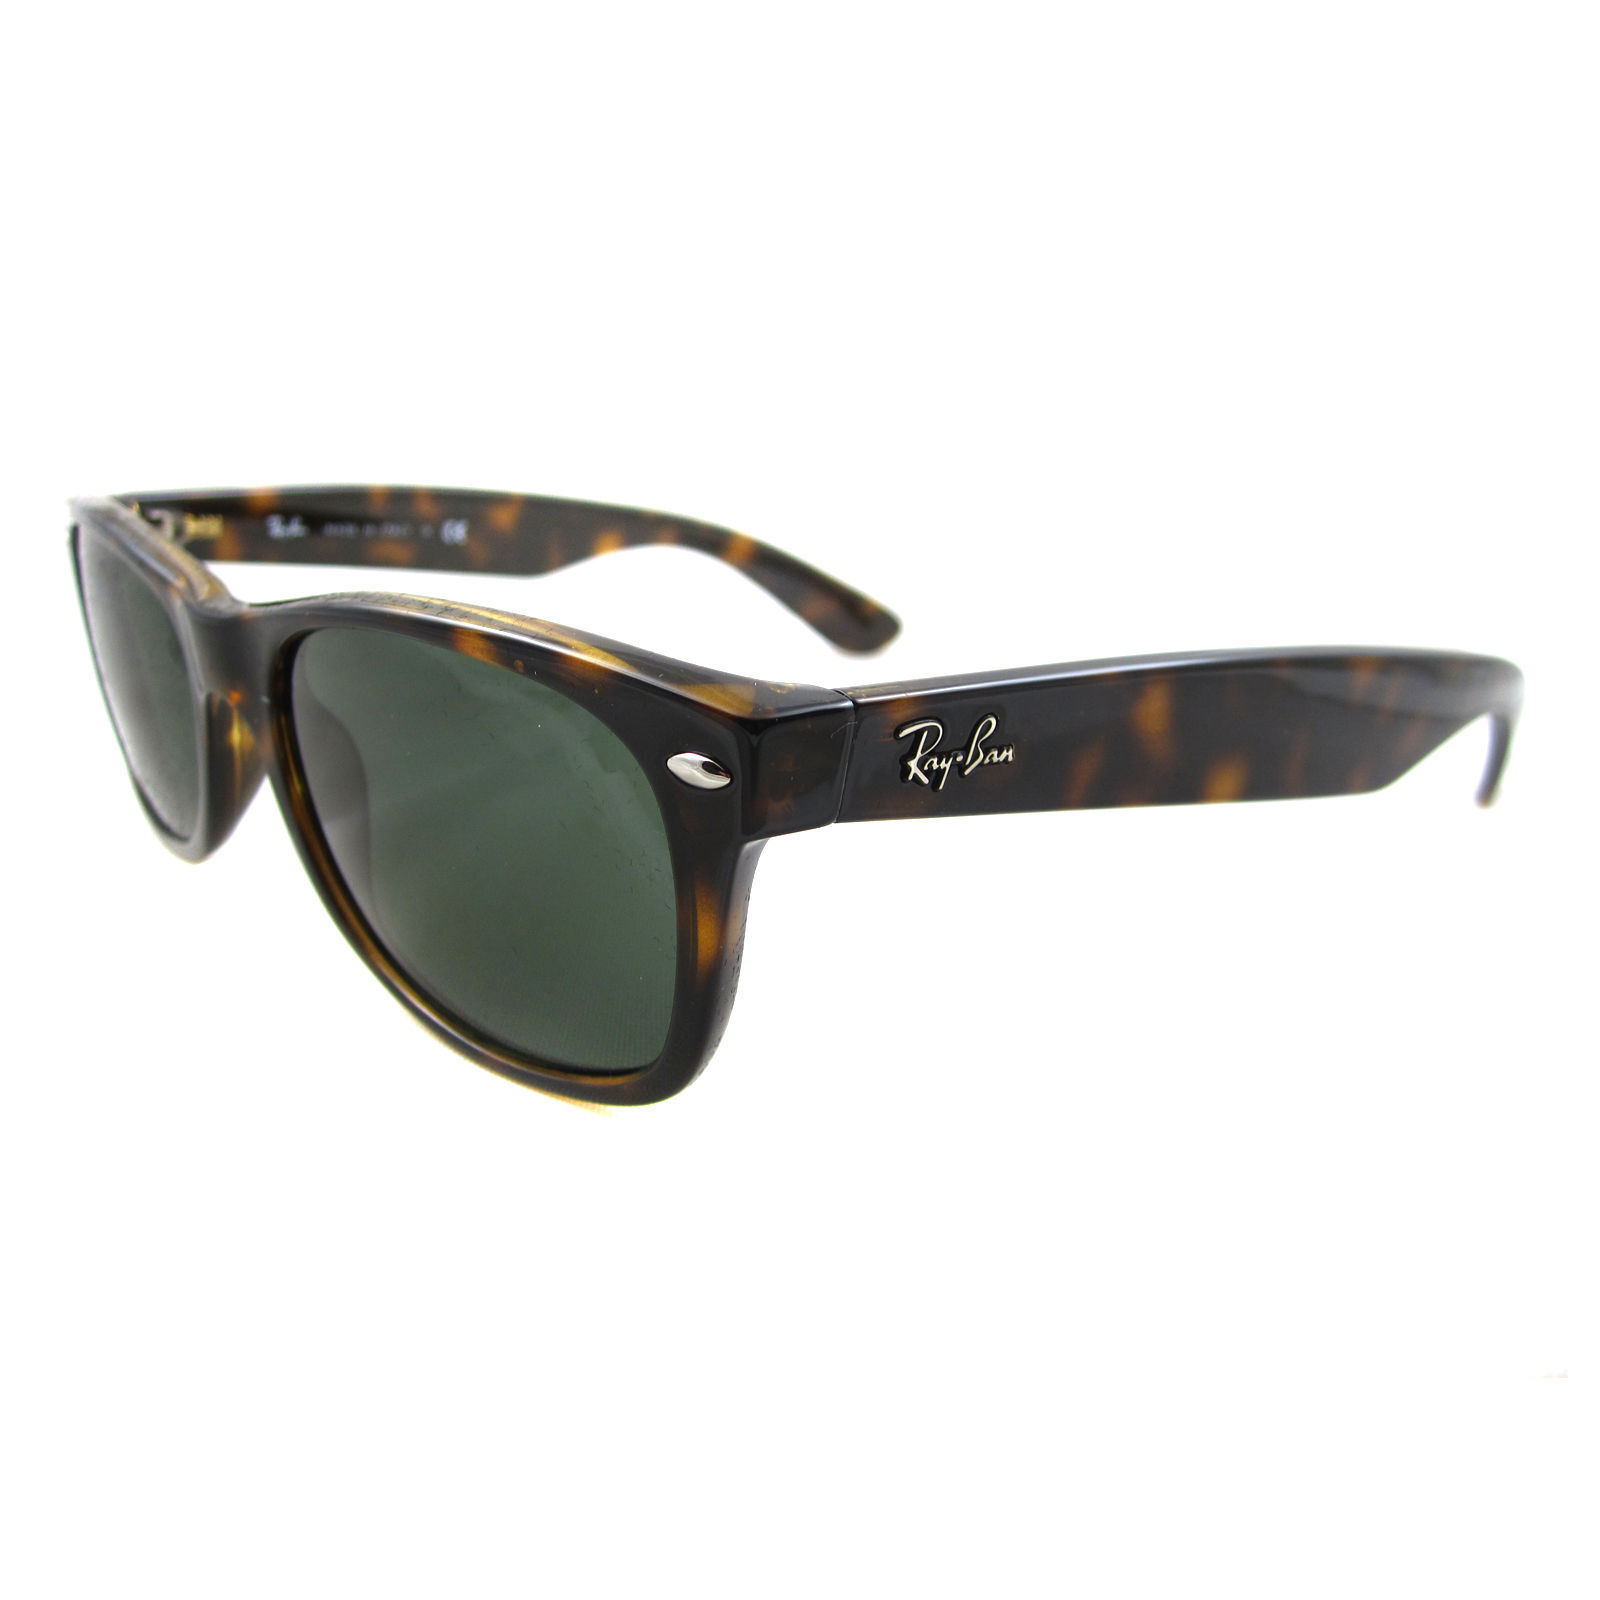 983986cb2e Ray-Ban RB2132 Wayfarer 902 Tortoise Sunglasses for sale online